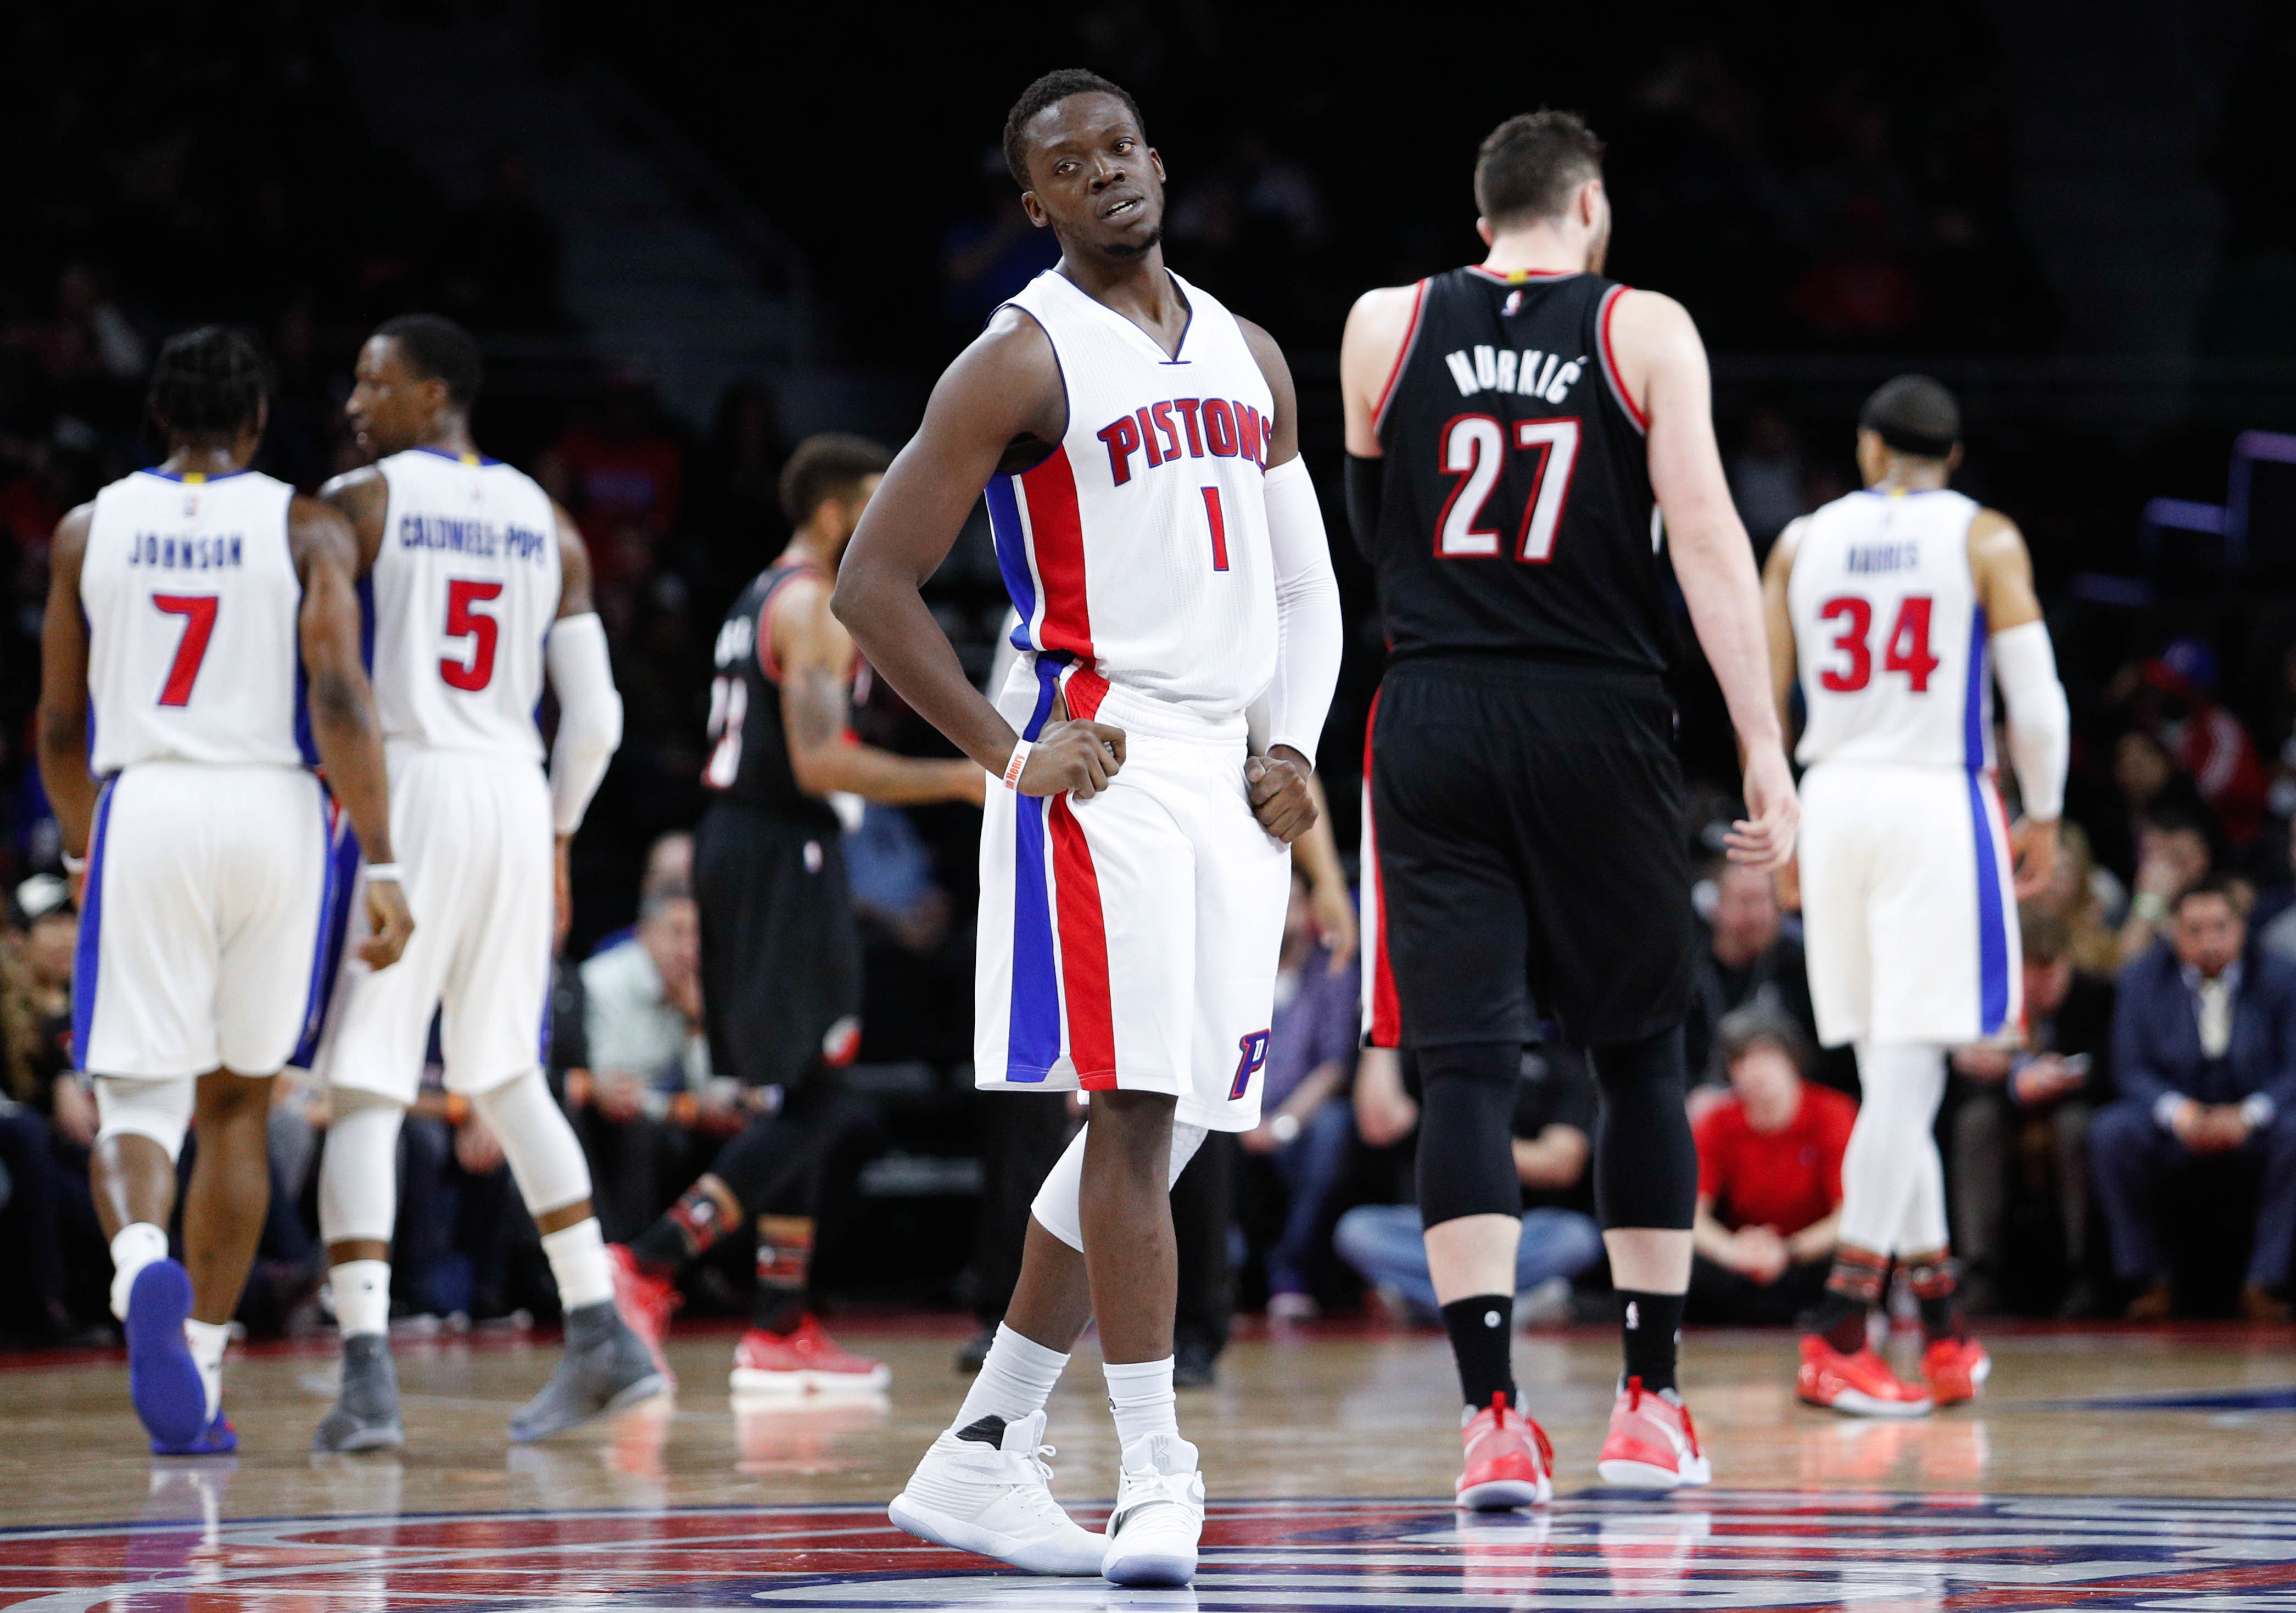 Detroit Pistons: The Pistons biggest concerns entering the 2017 offseason